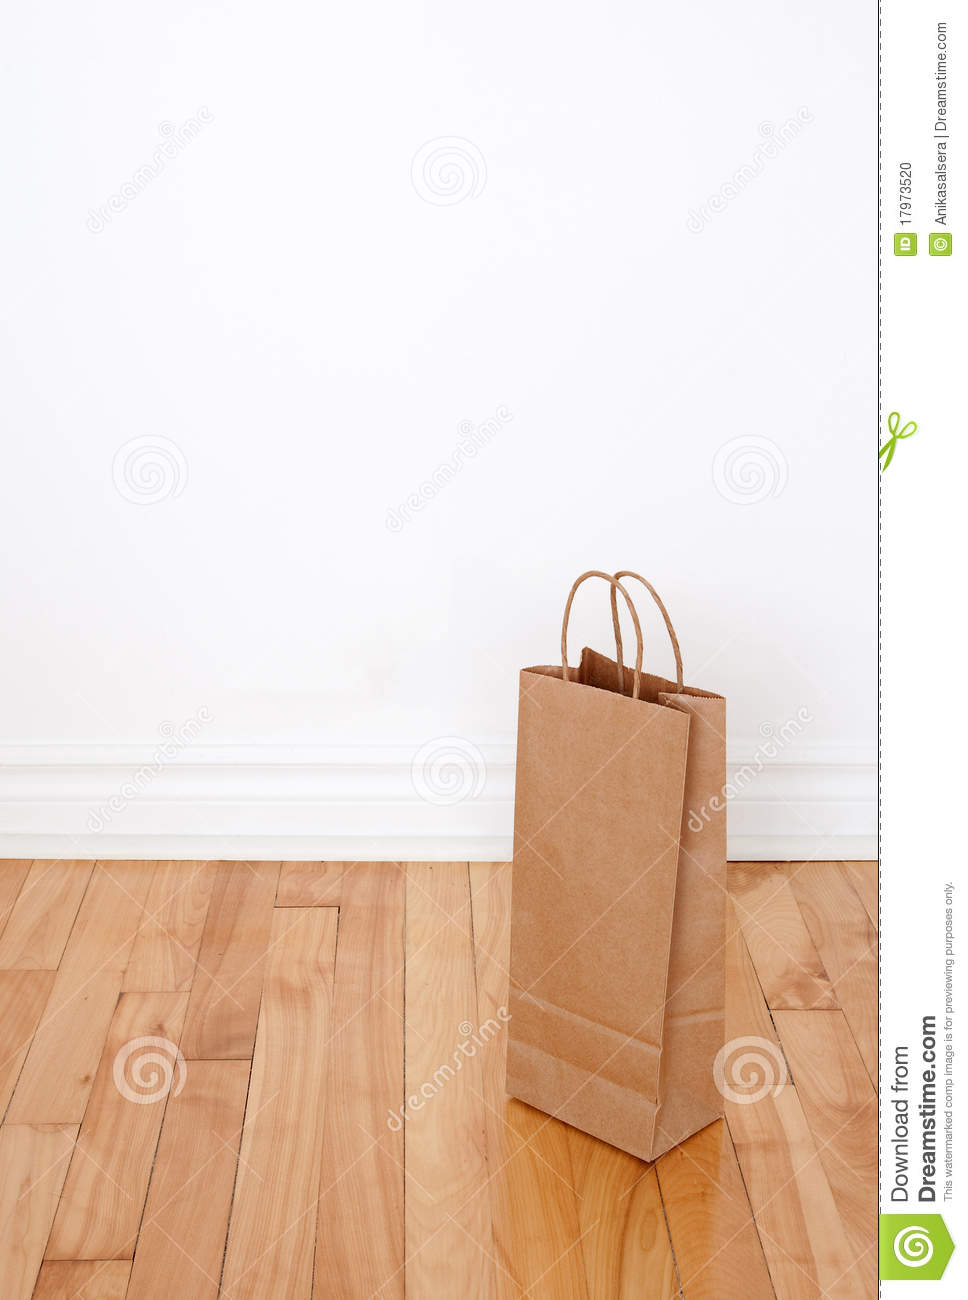 Paper bag on wooden floor stock photo image of grocery for On the floor on the floor